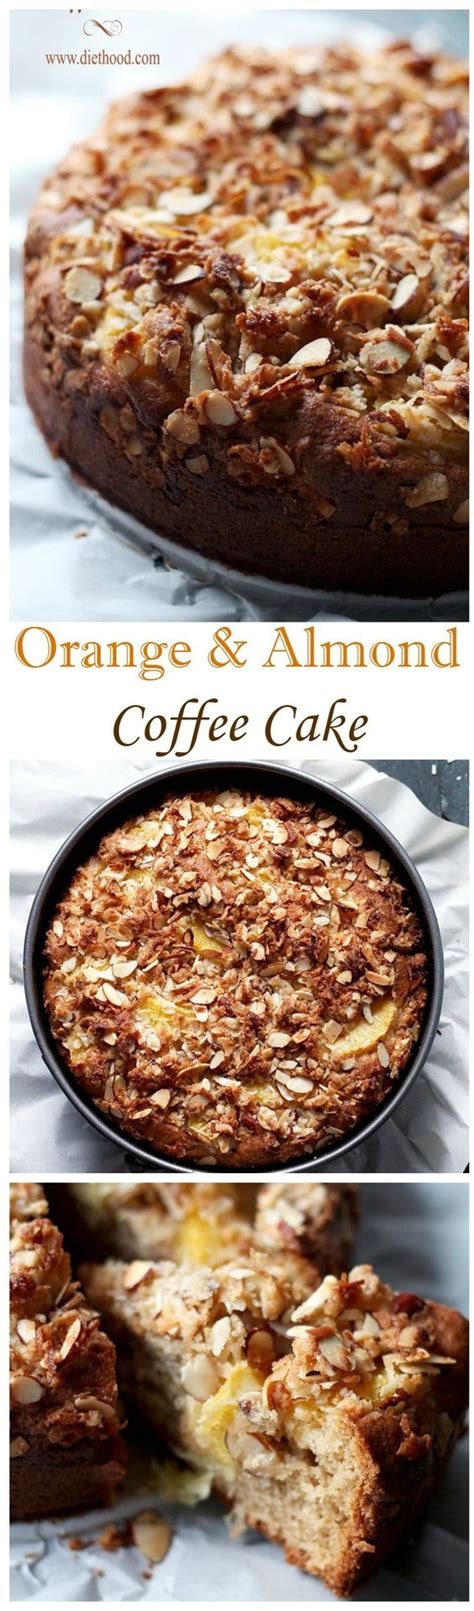 Fold in the flour, baking powder, almonds, and the coffee. Tender, rich, citrusy and sweet Orange coffee cake topped ...